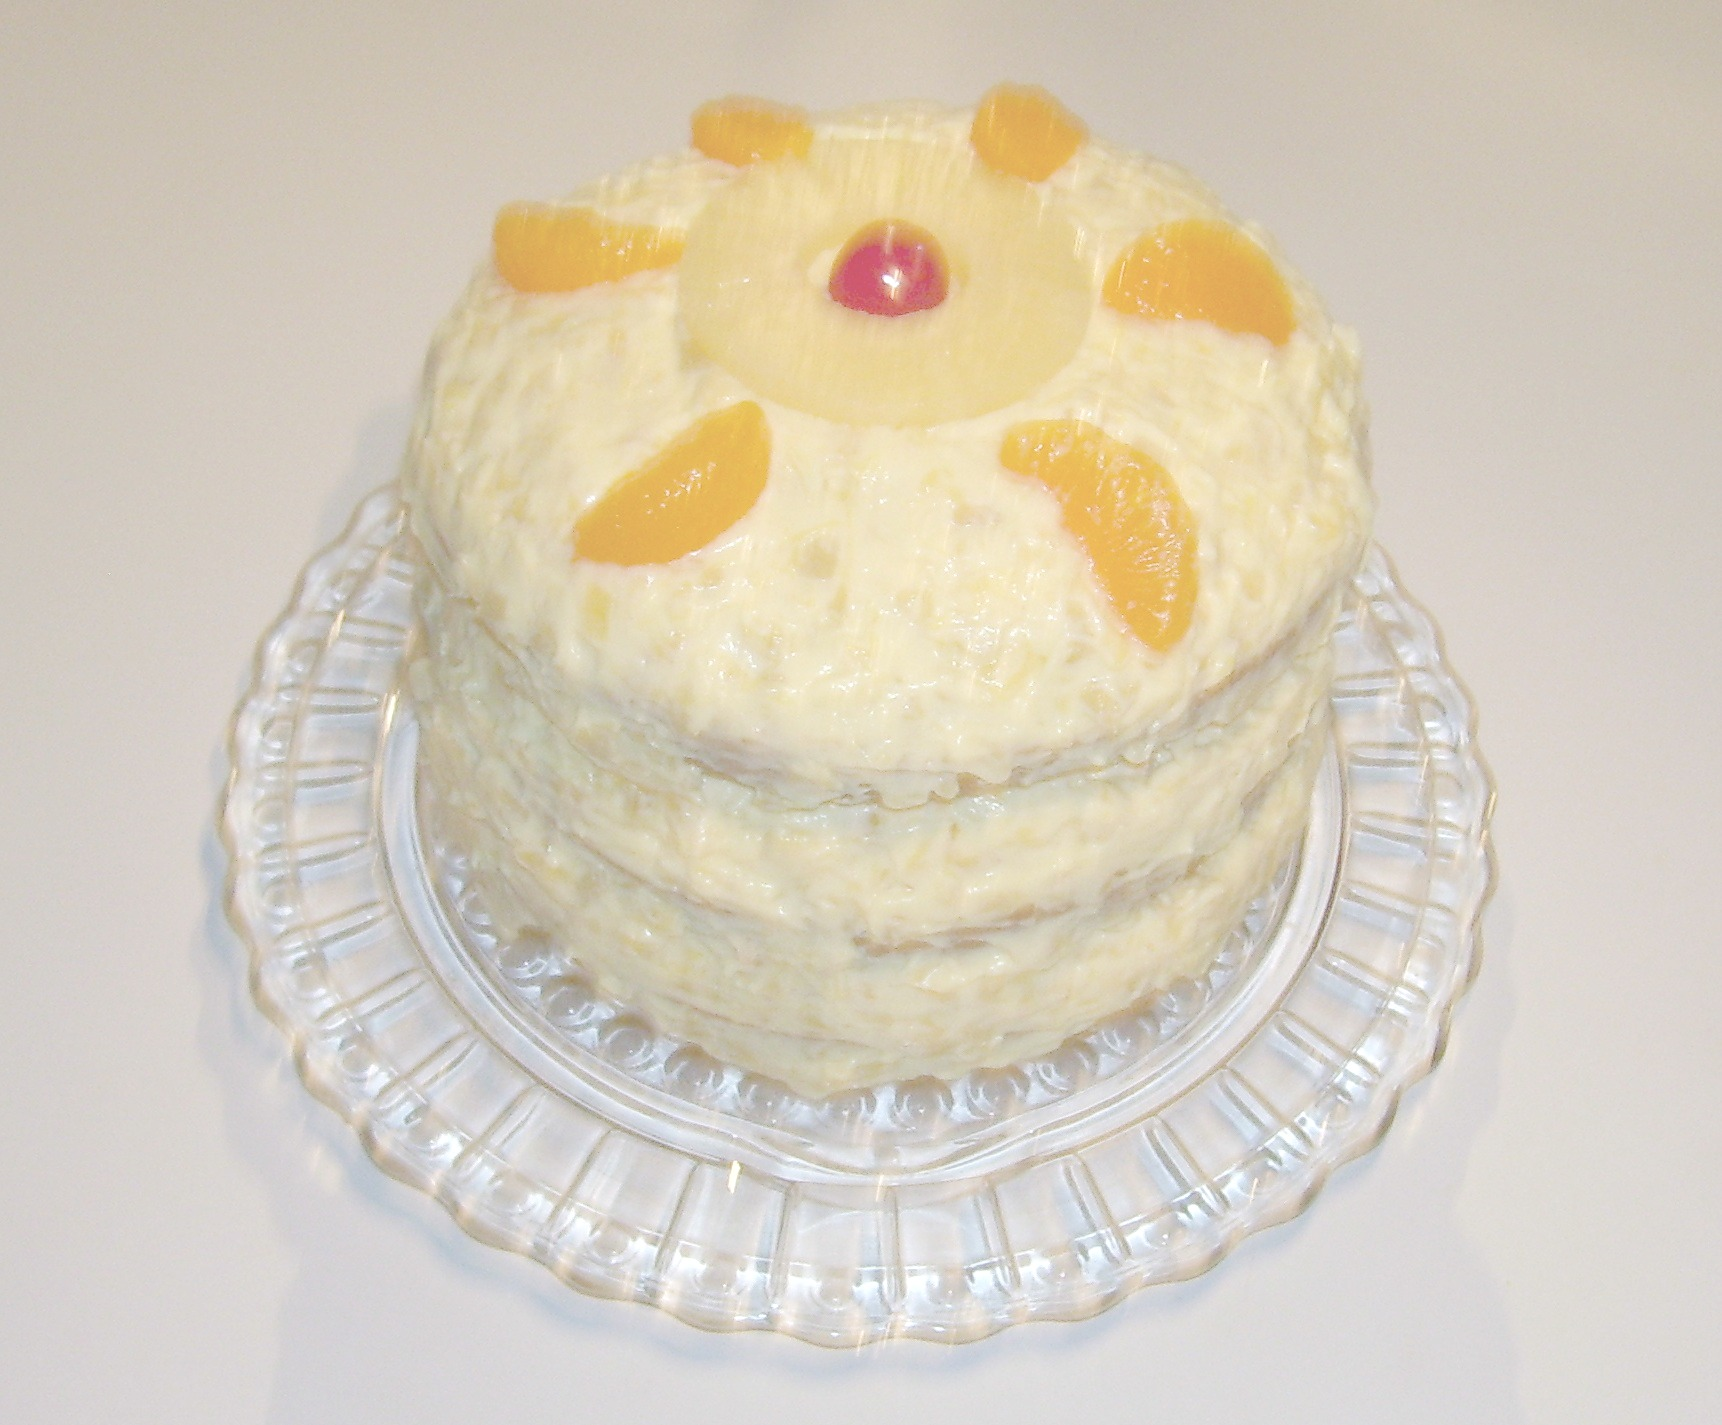 Pig Pickin Cake Recipe, an Old Fashioned Cake Recipe made moist and delicious with Mandarin Oranges and Pineapple.